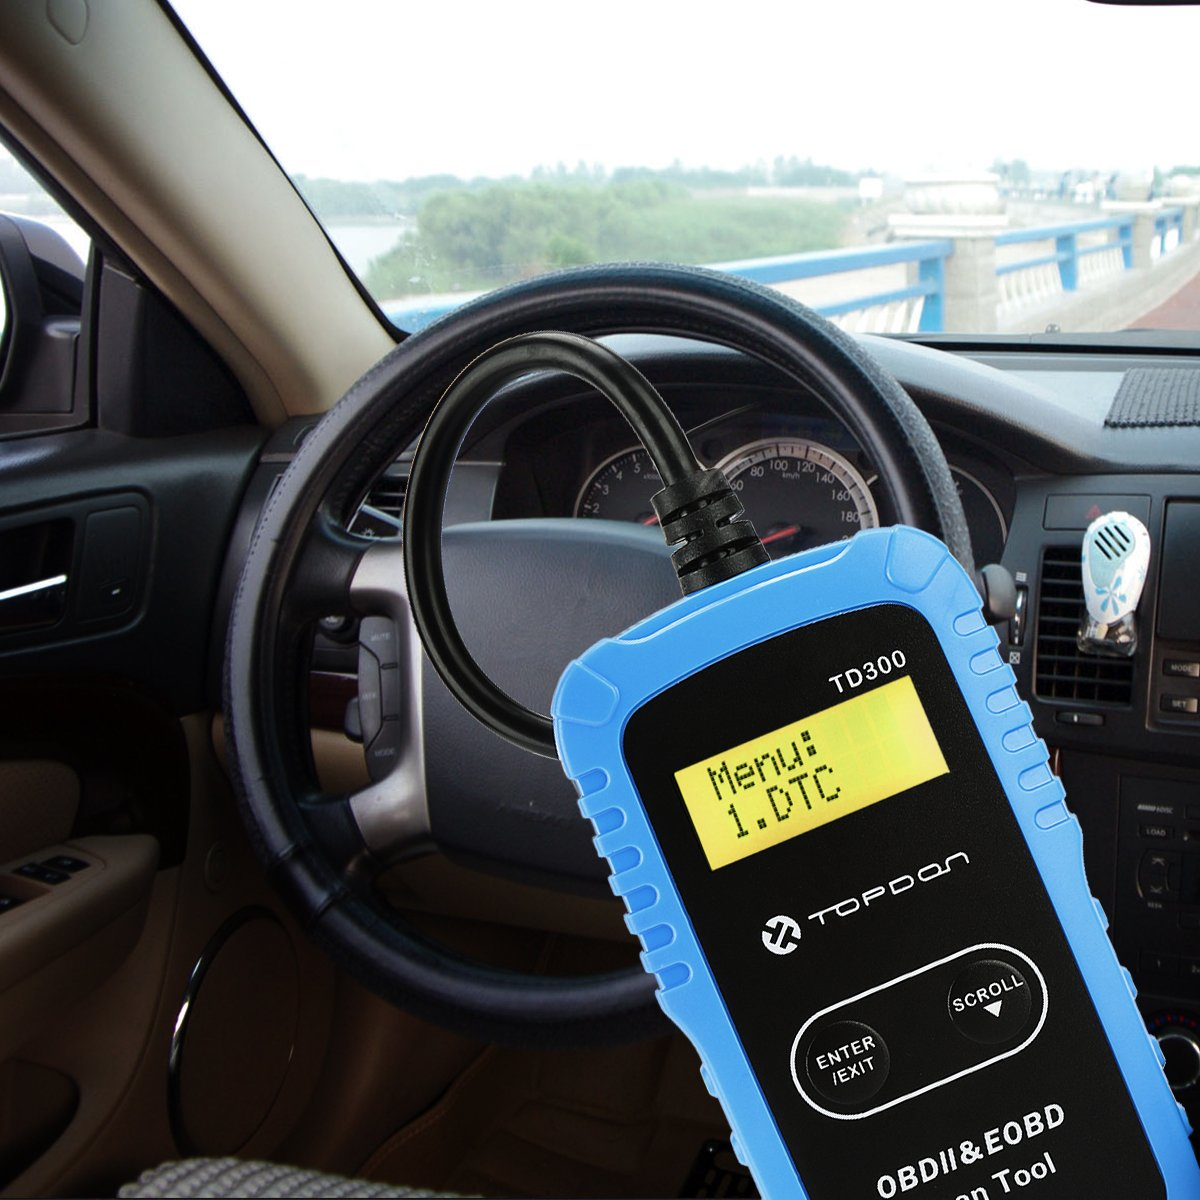 A small-sized, entry-level scan tool, the Topdon TD300 OBD2 Code Reader is ideal for beginners and average car owners